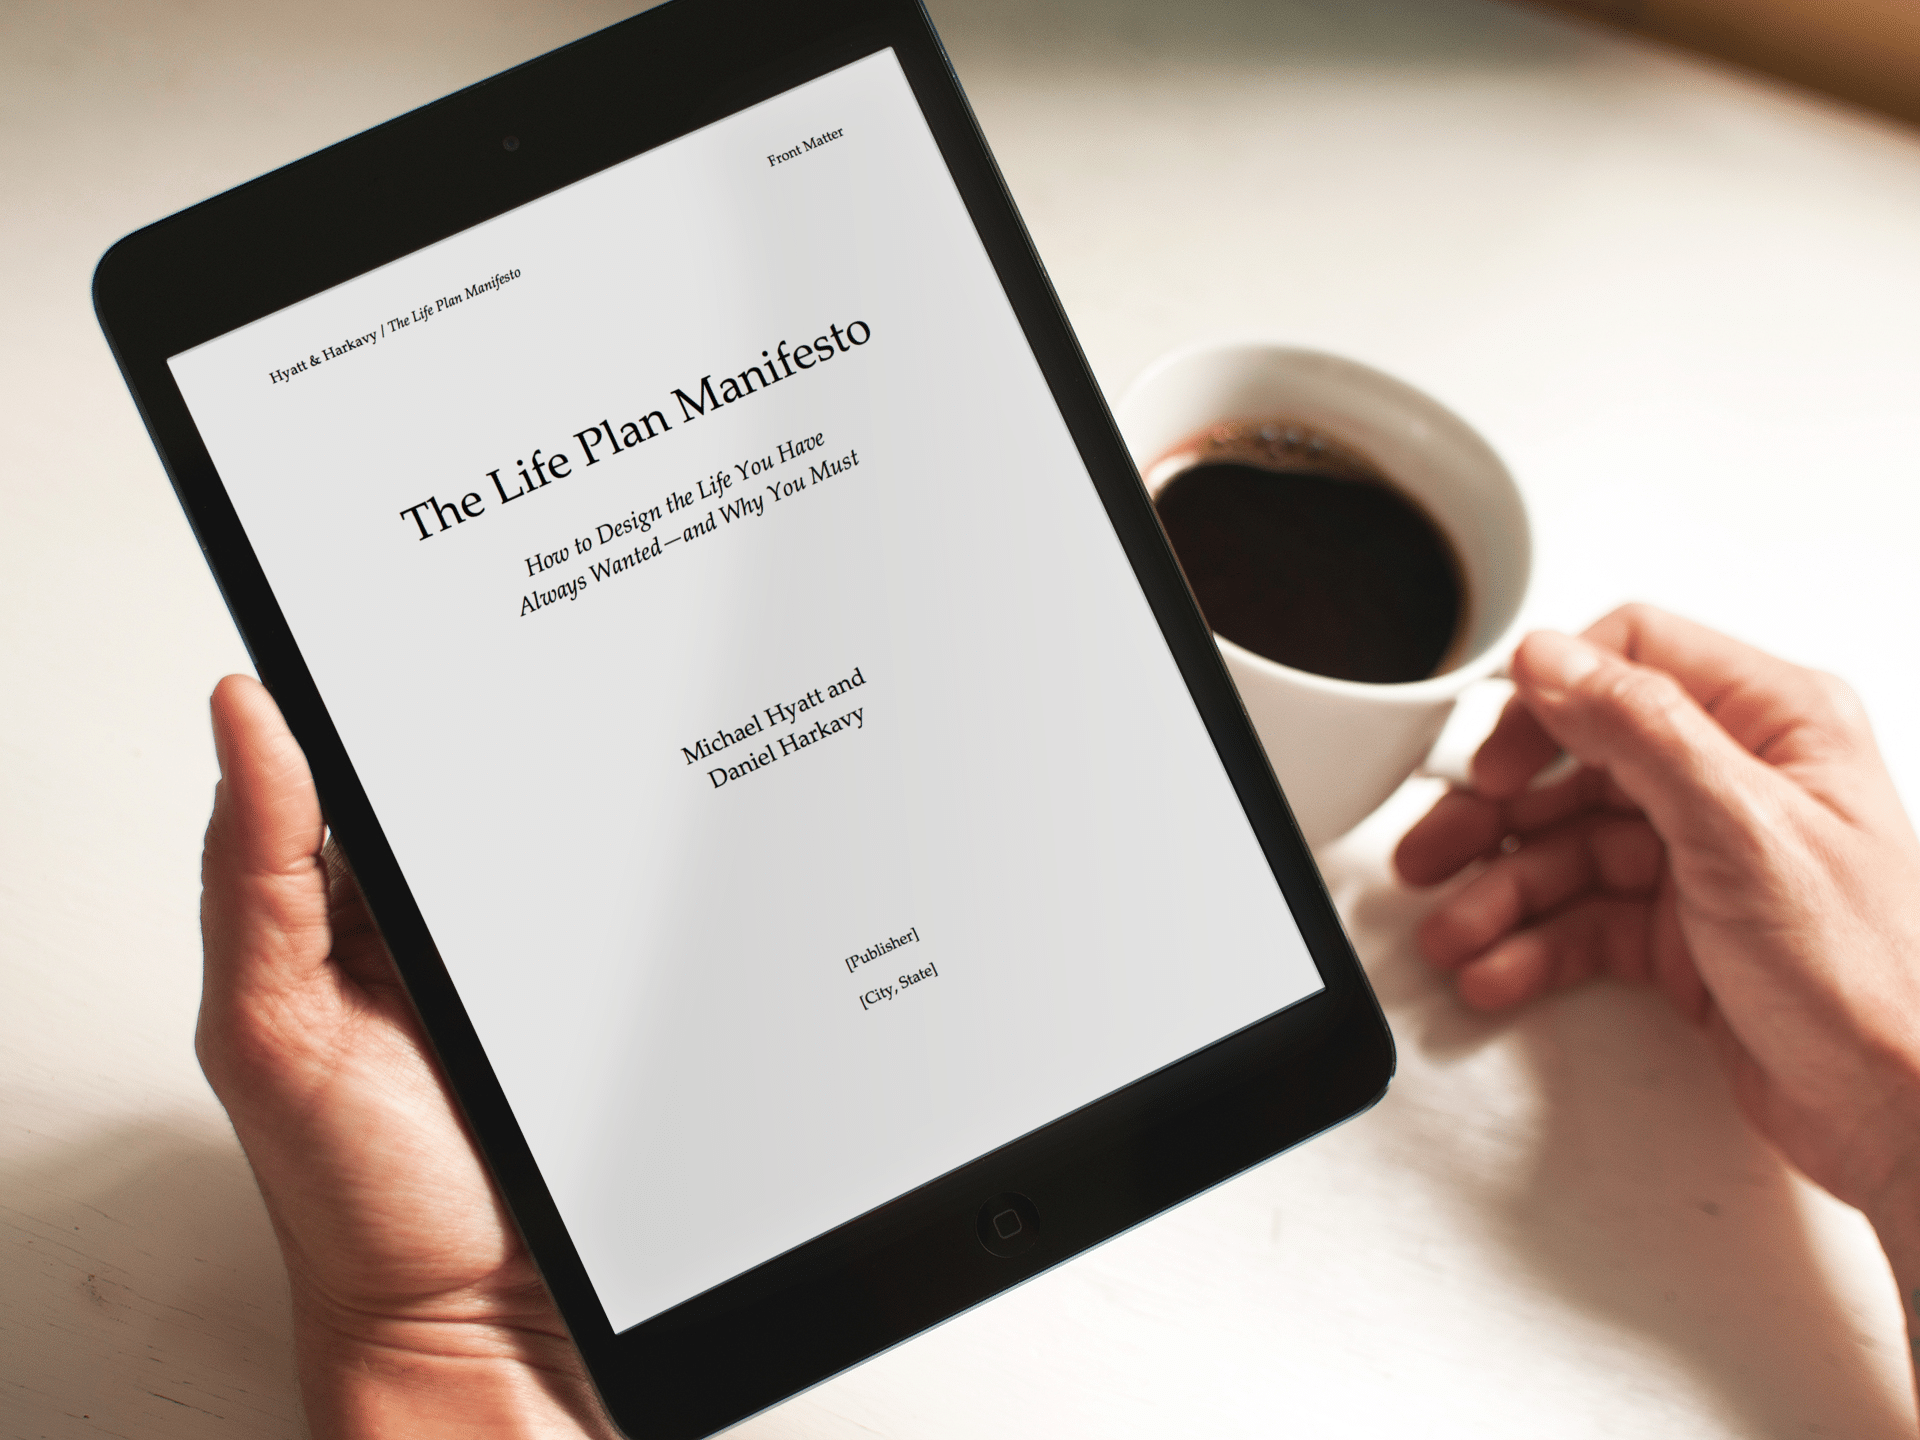 Life Plan Manifesto Manuscript in iPad